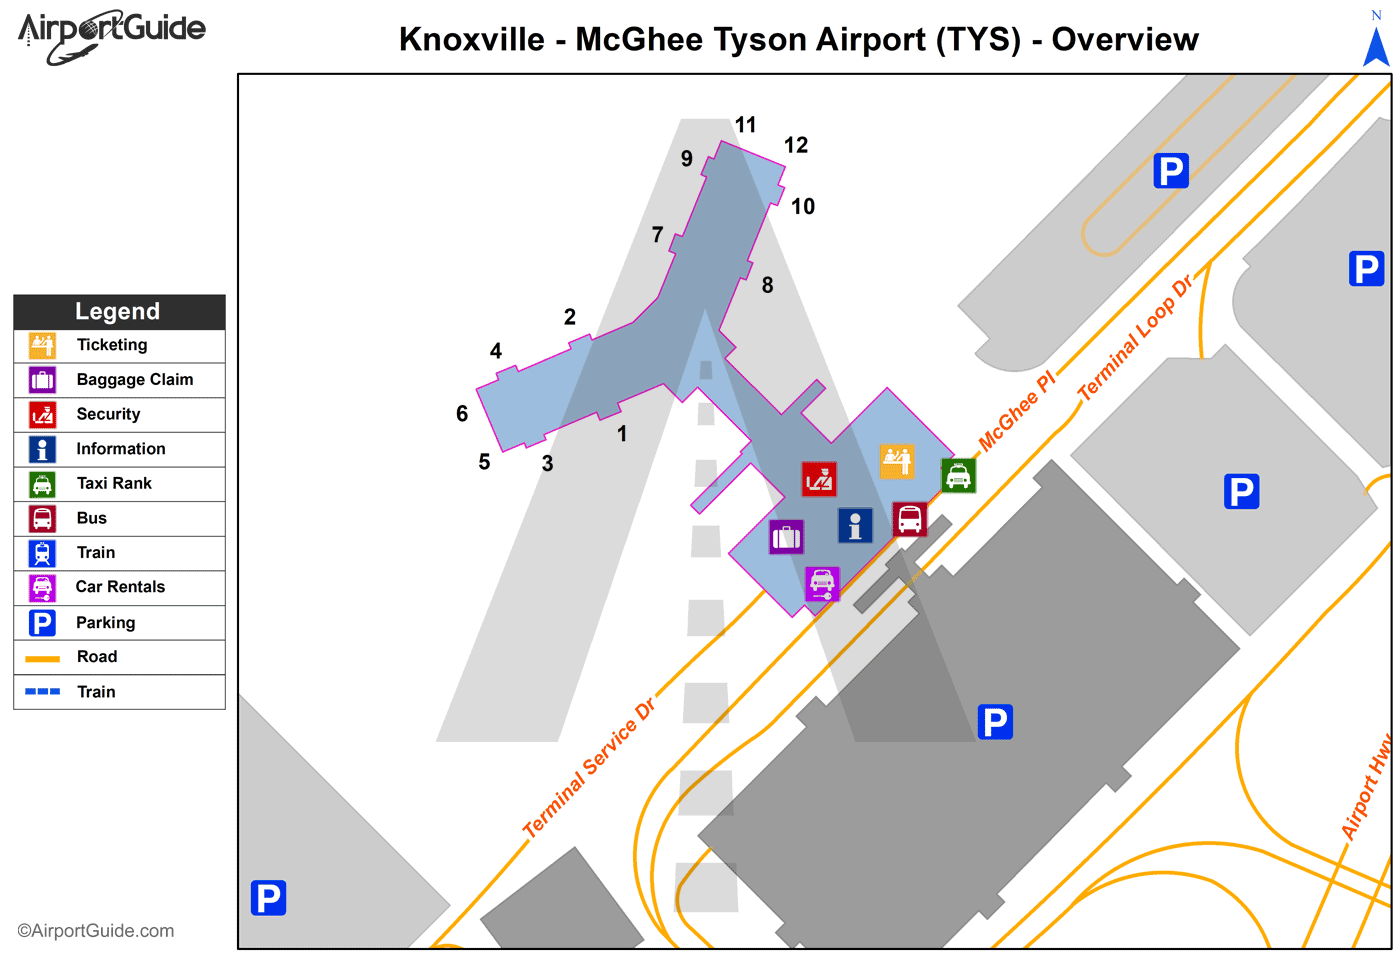 Knoxville - Mc Ghee Tyson (TYS) Airport Terminal Map - Overview